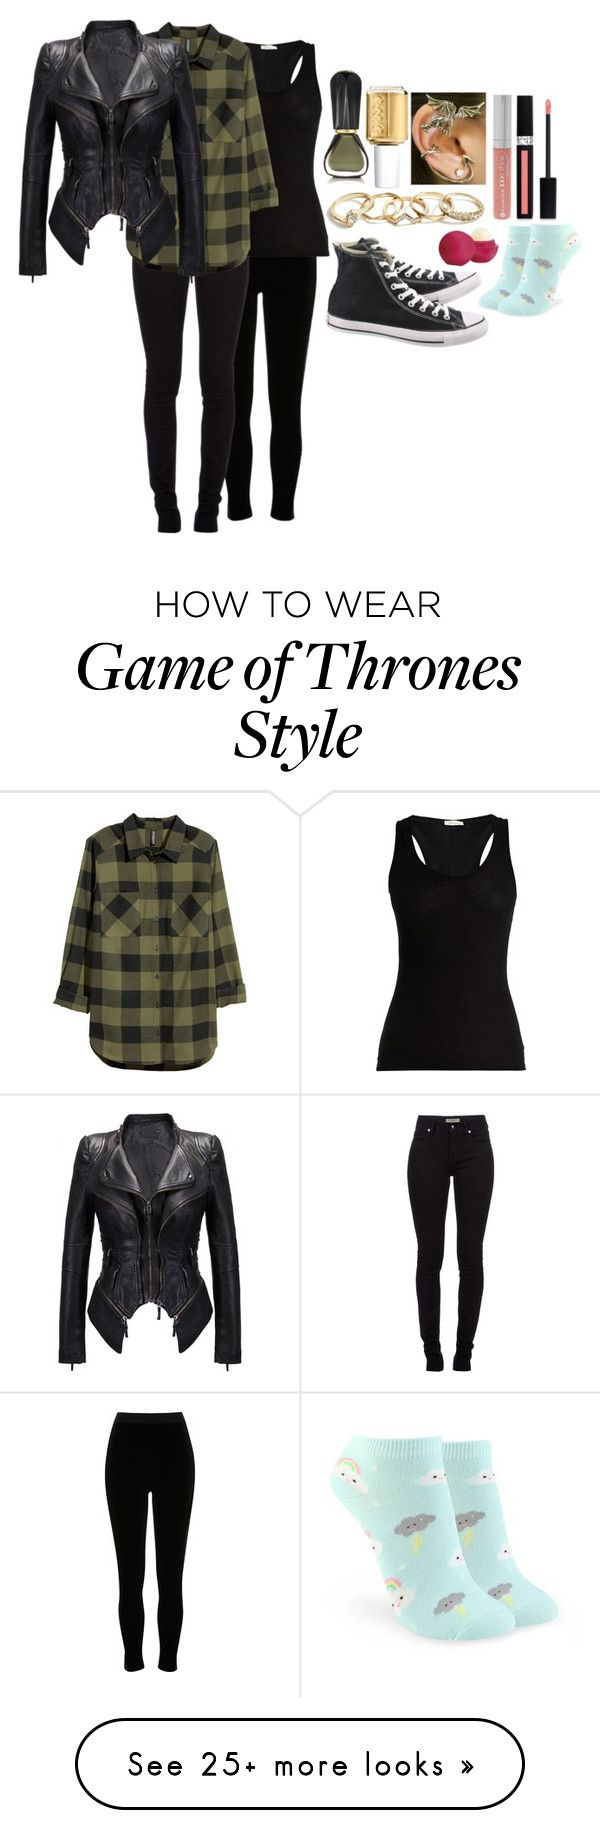 """""""Chapter One - The Capture"""" by nixasecus on Polyvore featuring River Island, Burberry, Skin, H&M, Forever 21, Oribe, Essie, GUESS, Converse and Christian Dior"""